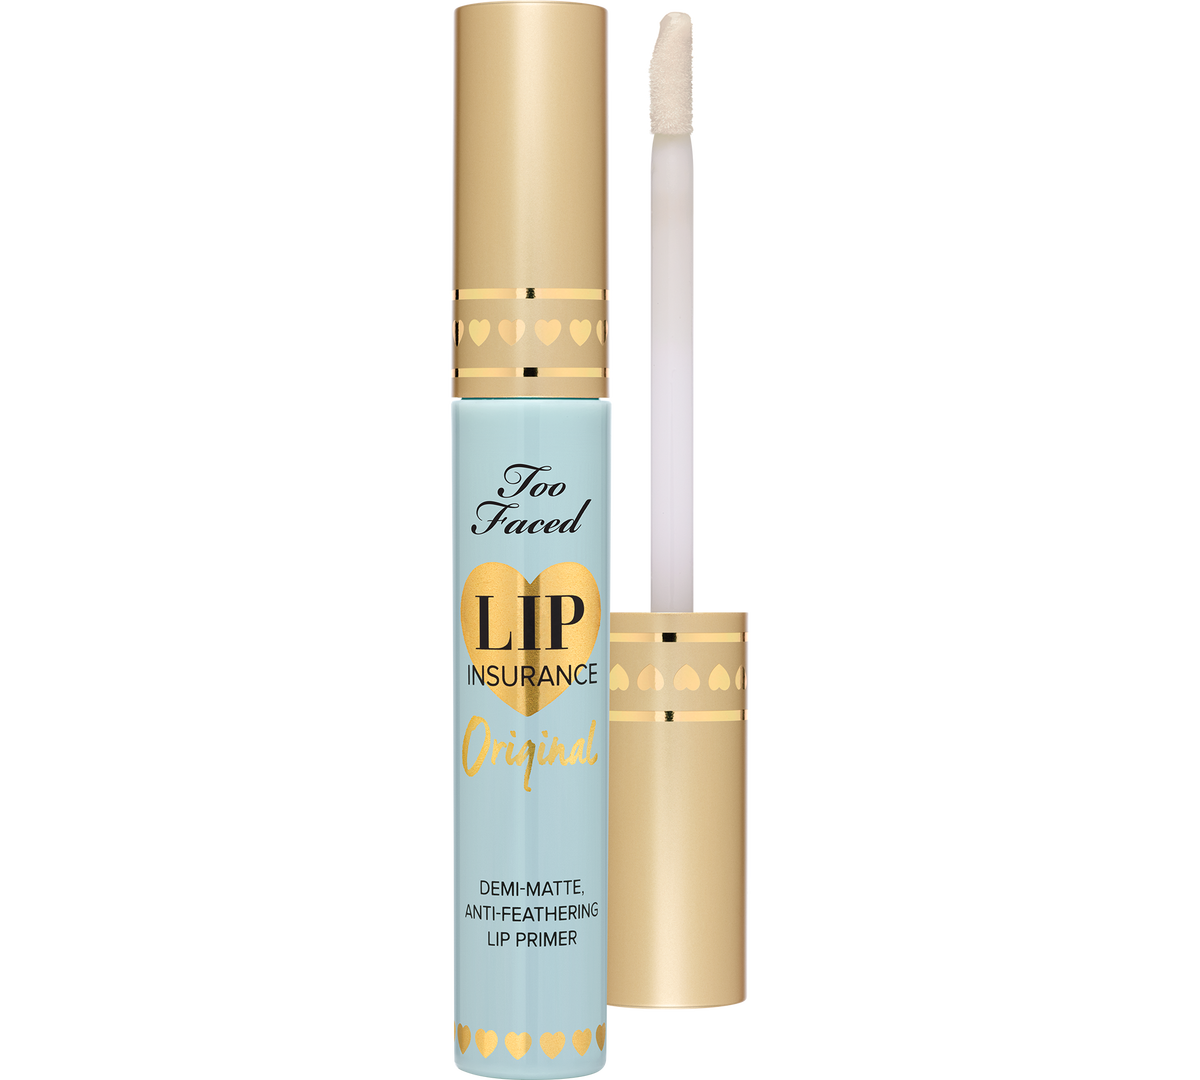 Too Faced Lip Insurance Lip Primer - For long Lasting Popsicle Lips